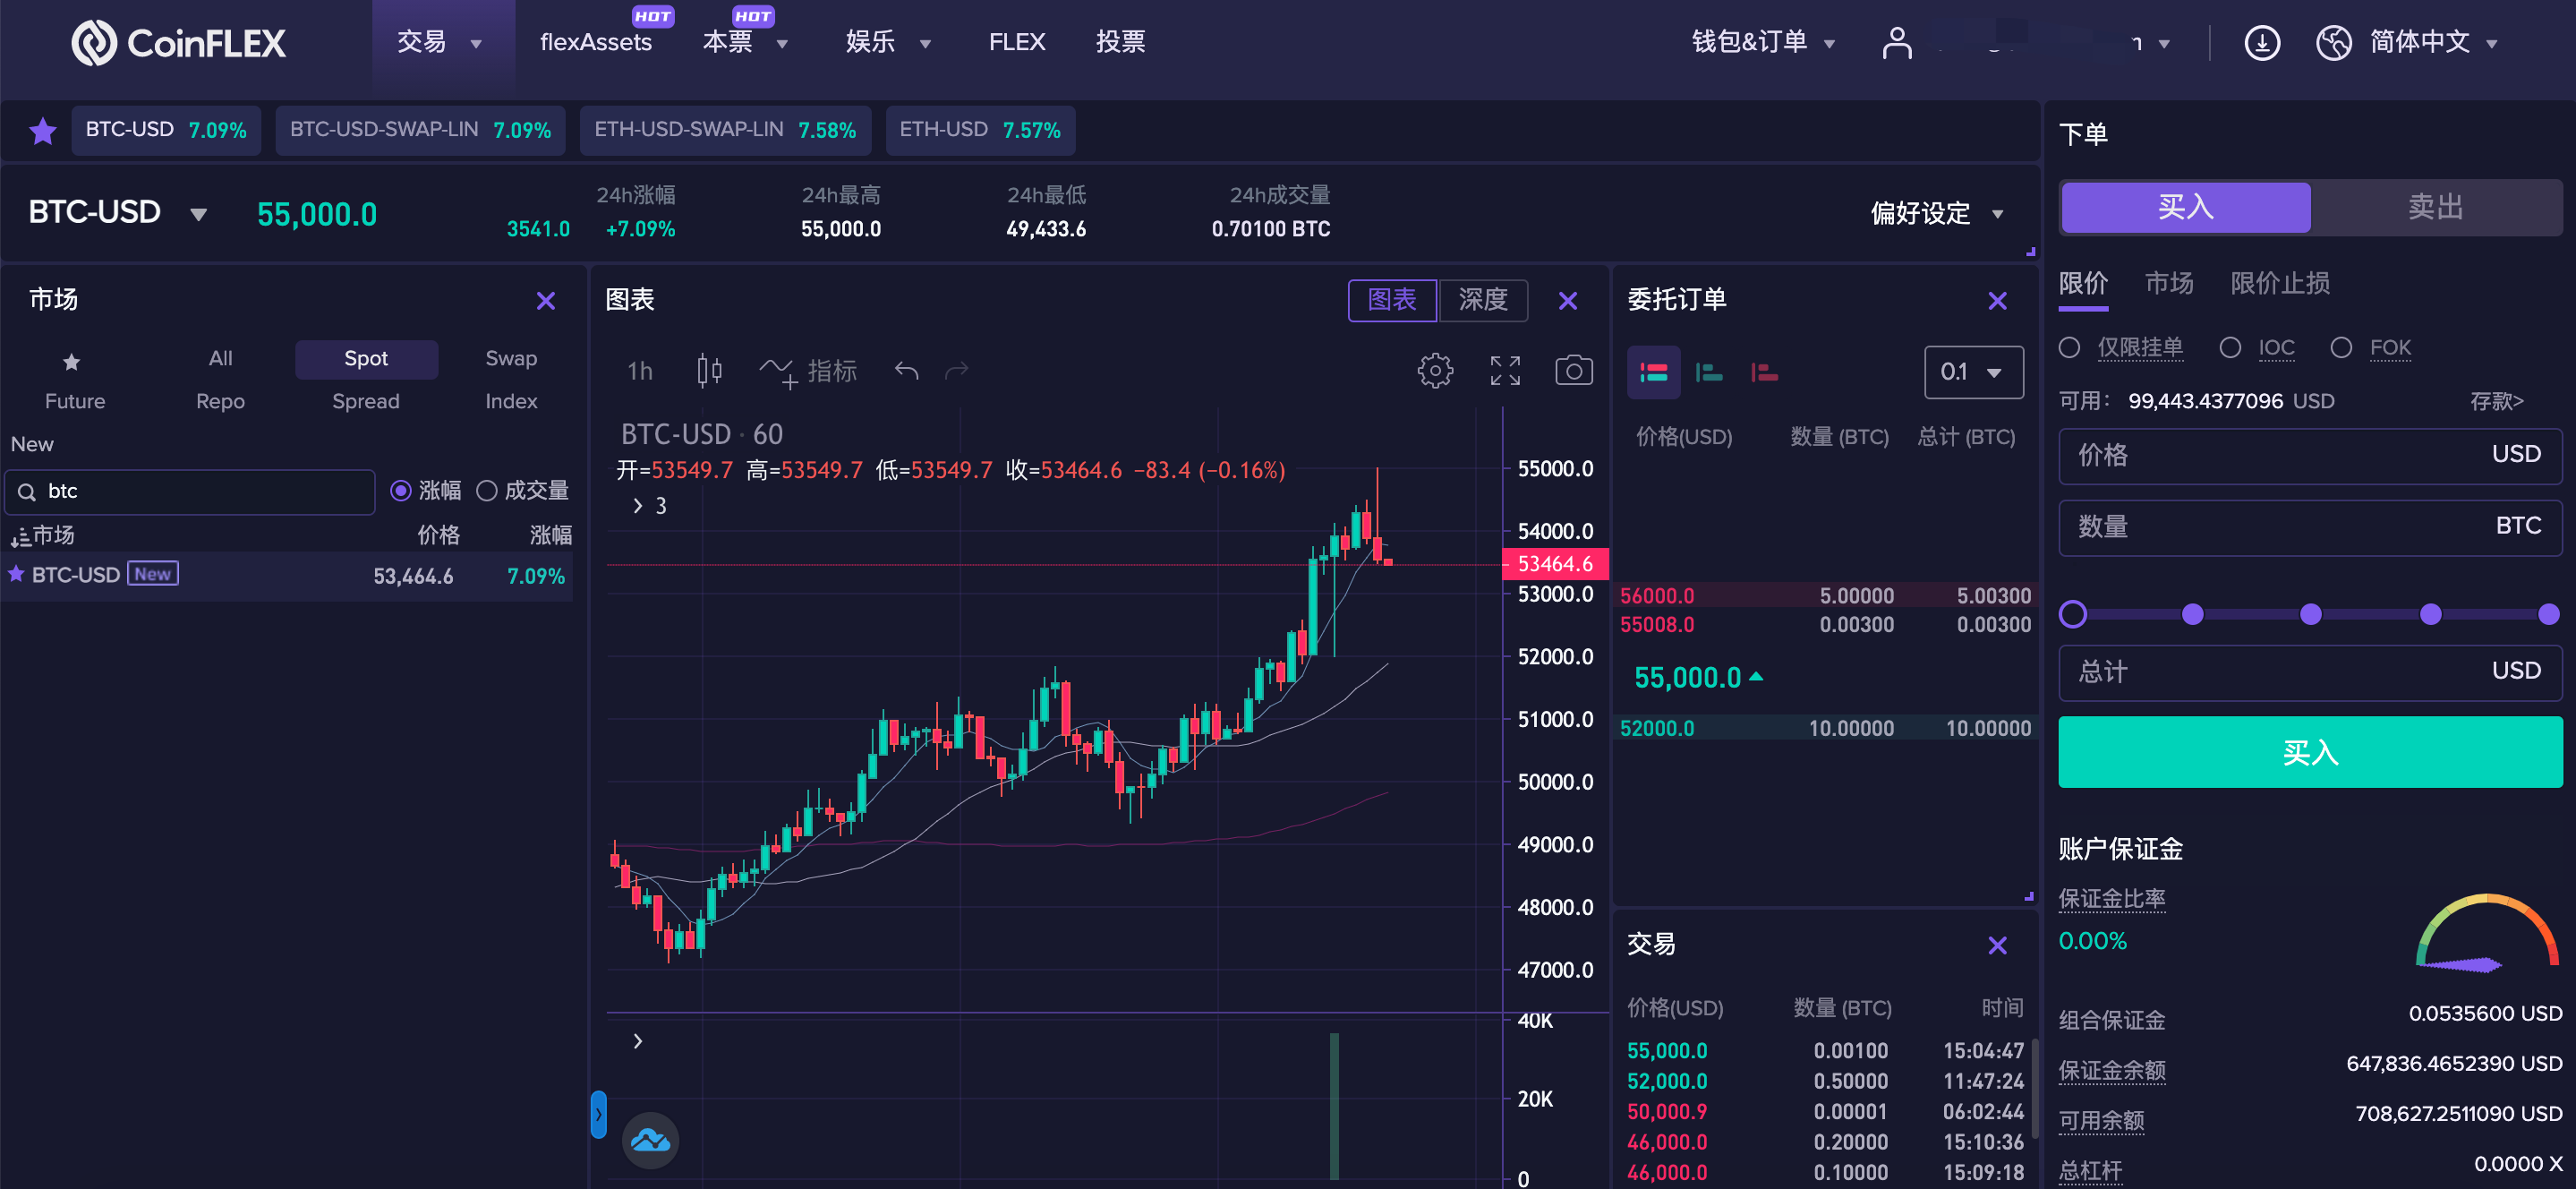 Trade4 1.1.10 Basics of how to trade on CoinFLEX